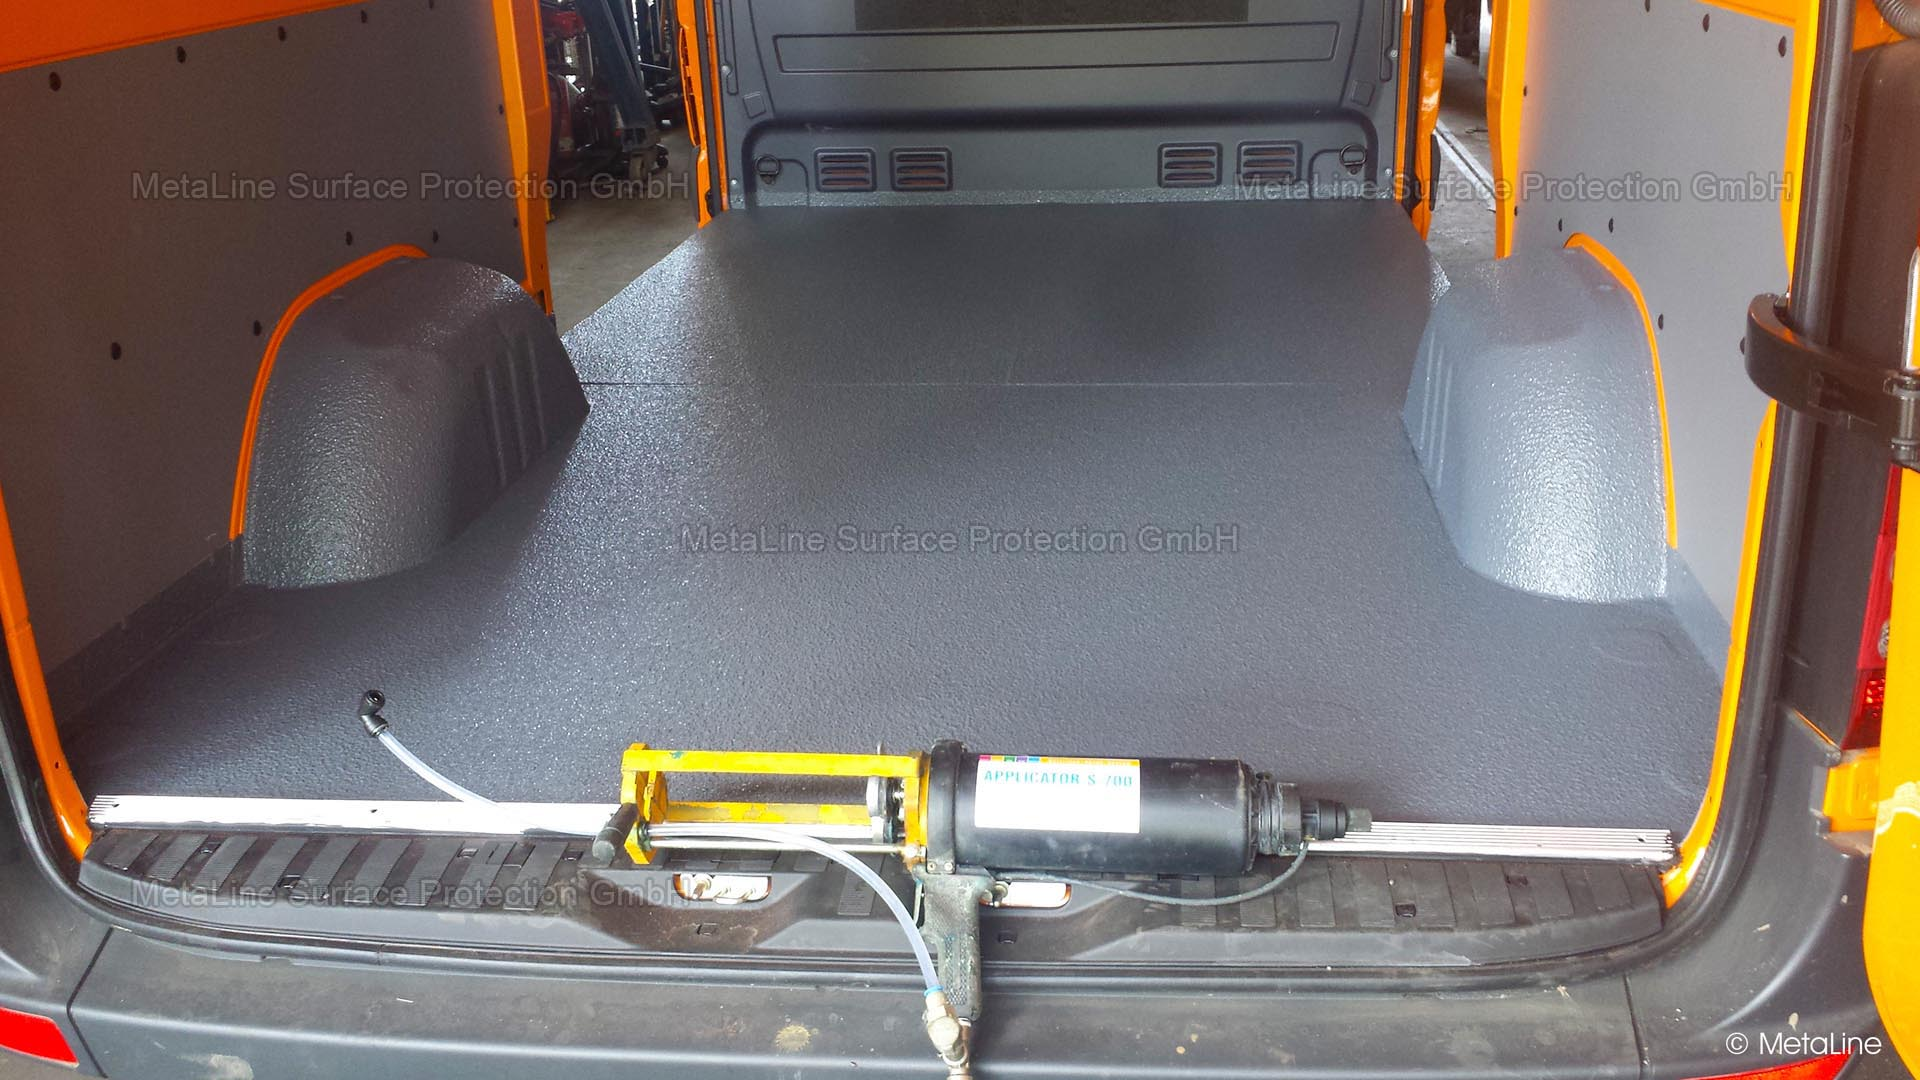 <!-- START: ConditionalContent --><!-- END: ConditionalContent -->   <!-- START: ConditionalContent --> Commercial vehicles; lining; coating; seamless; spraying; hygienic; PU; decorative; resilient; FDA; food safe; load securing; anti-slip; waterproof; elastic; cleanable; sprinter; transporter; loading area; interior; anti-stick; cargo area; anti-stick <!-- END: ConditionalContent -->   <!-- START: ConditionalContent --><!-- END: ConditionalContent -->   <!-- START: ConditionalContent --><!-- END: ConditionalContent -->